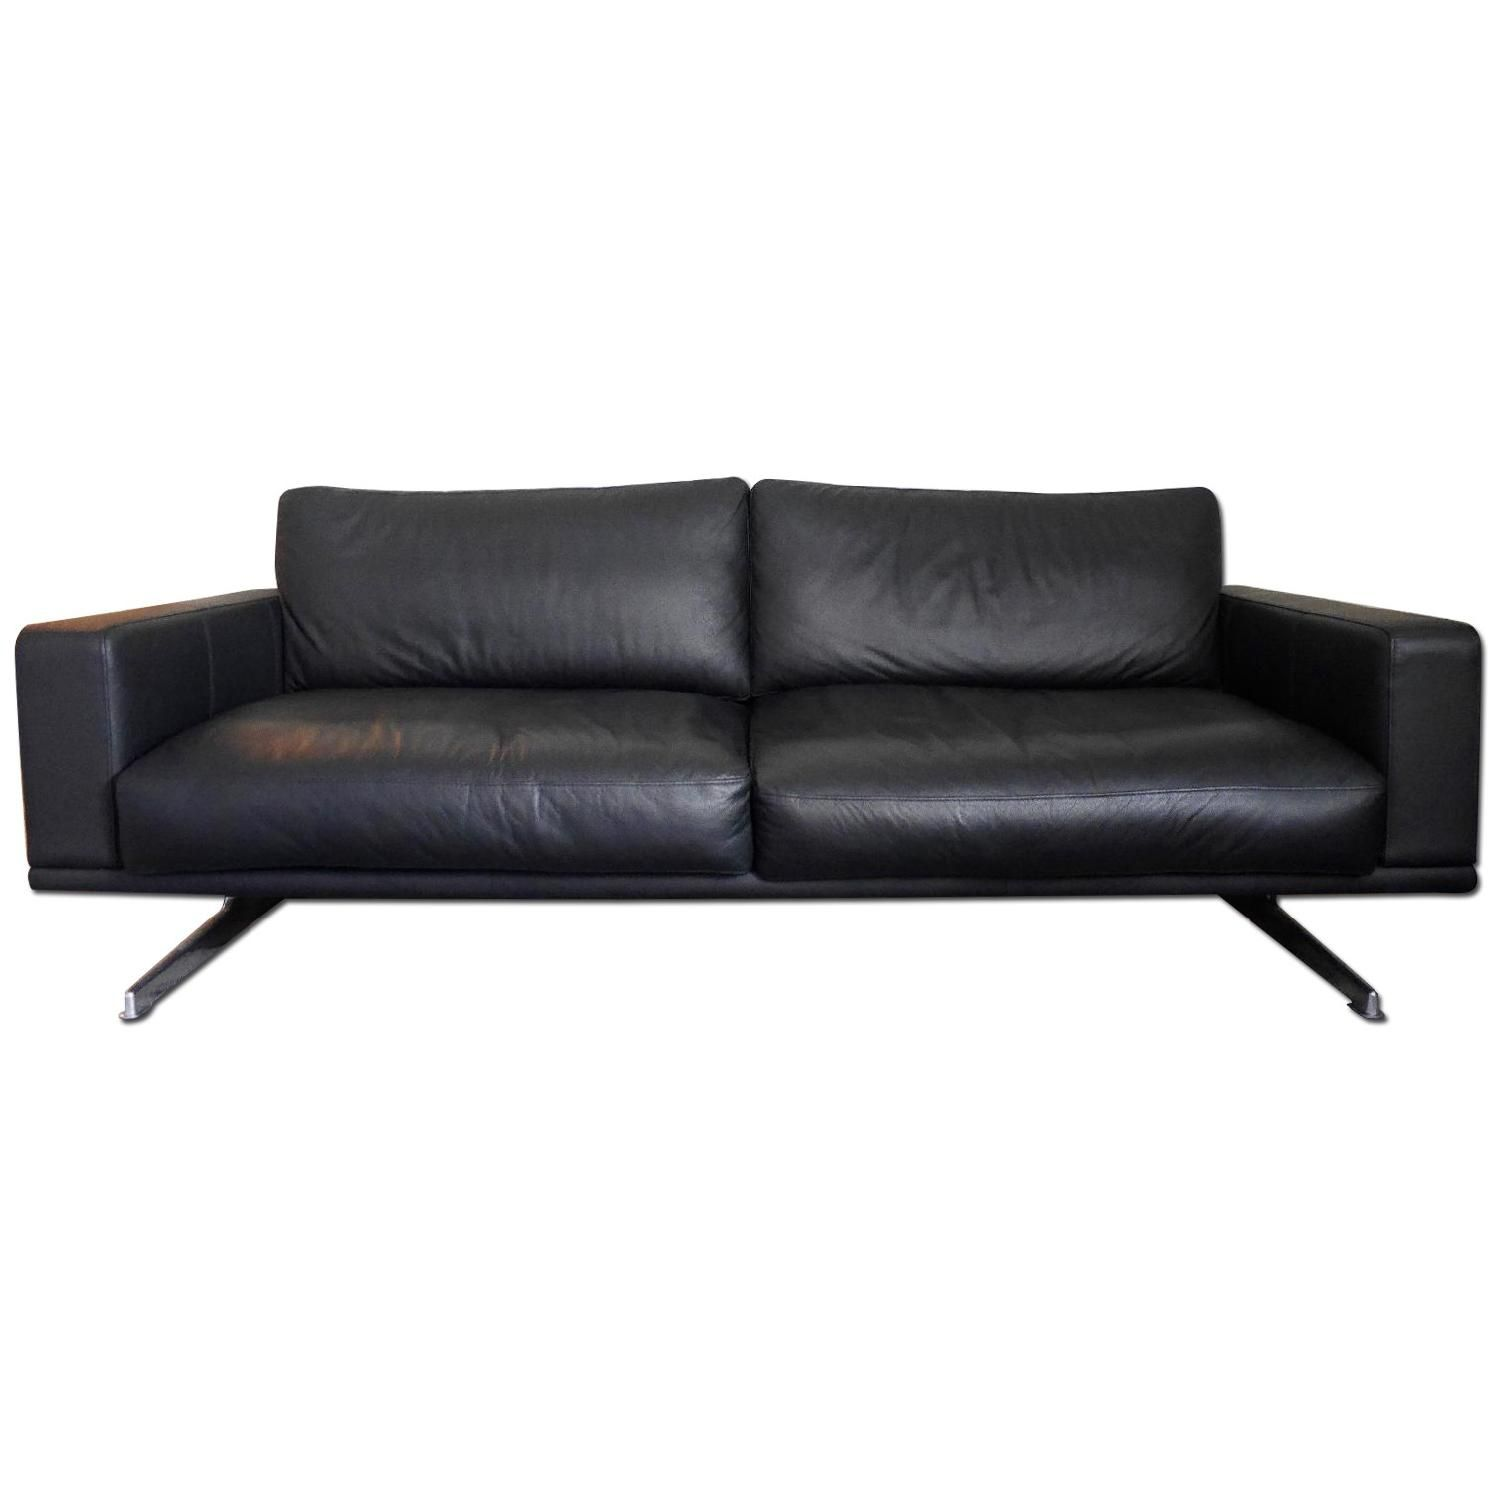 Boconcept Carlton Black Lima Leather Couch W Metal Legs Aptdeco Leather Couch Couch Two Couches